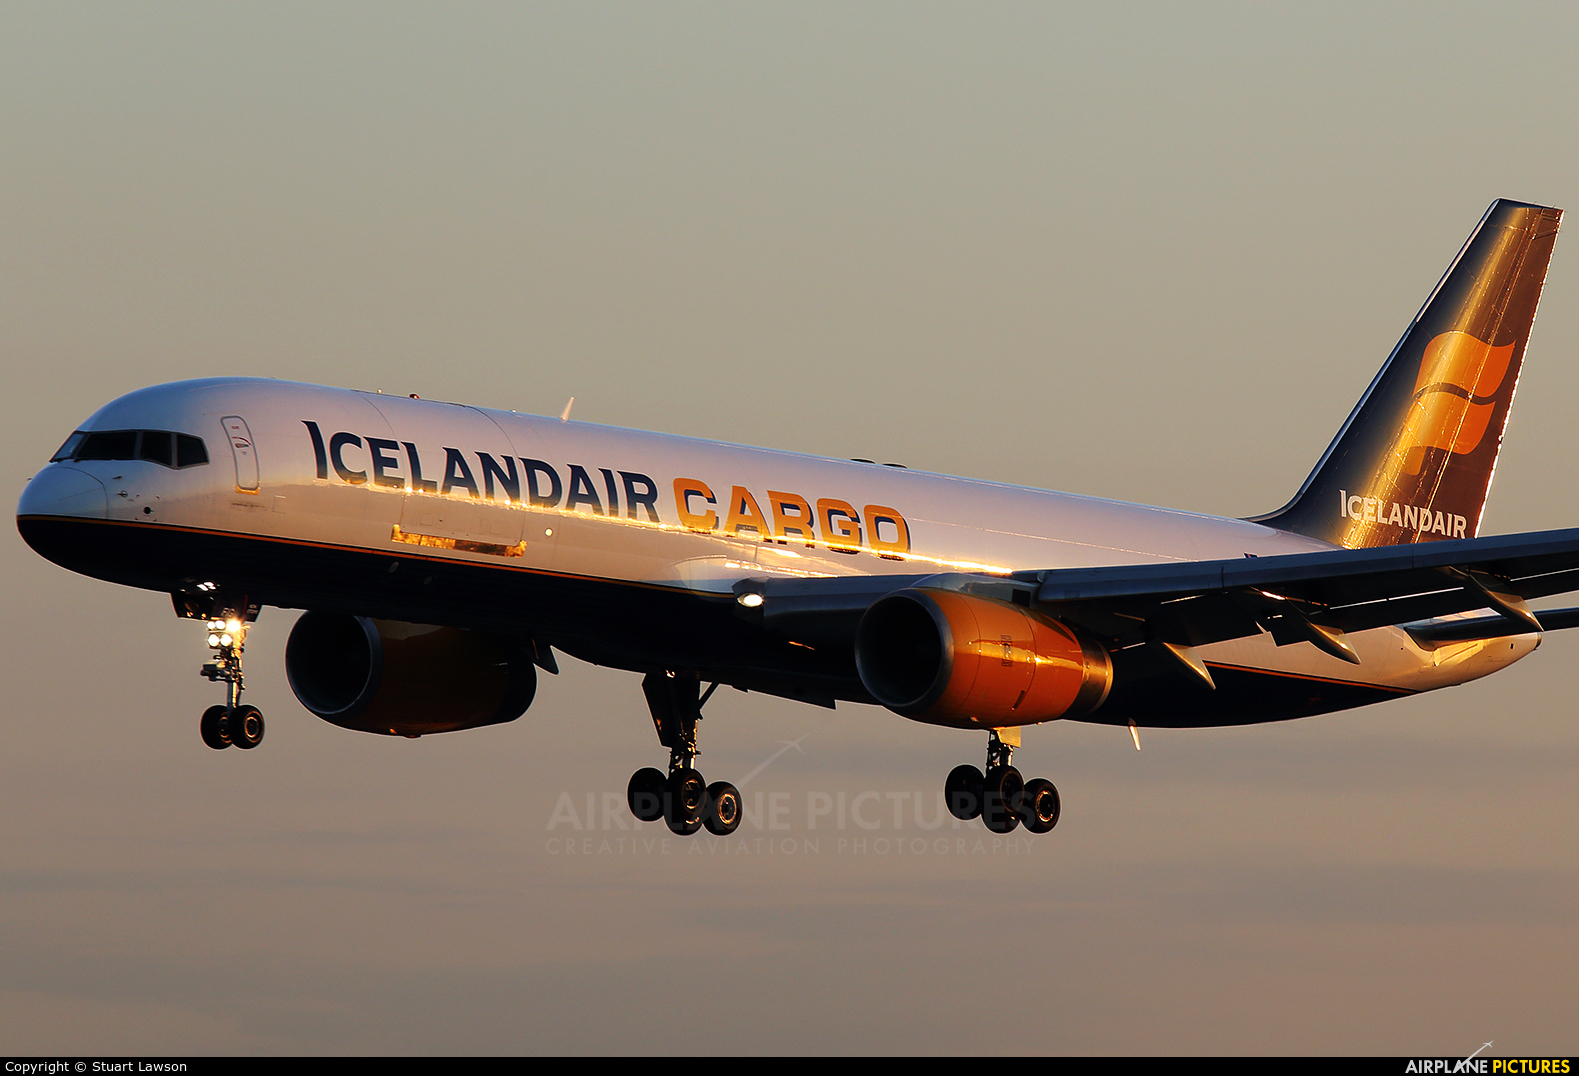 Icelandair Cargo TF-FIG aircraft at East Midlands